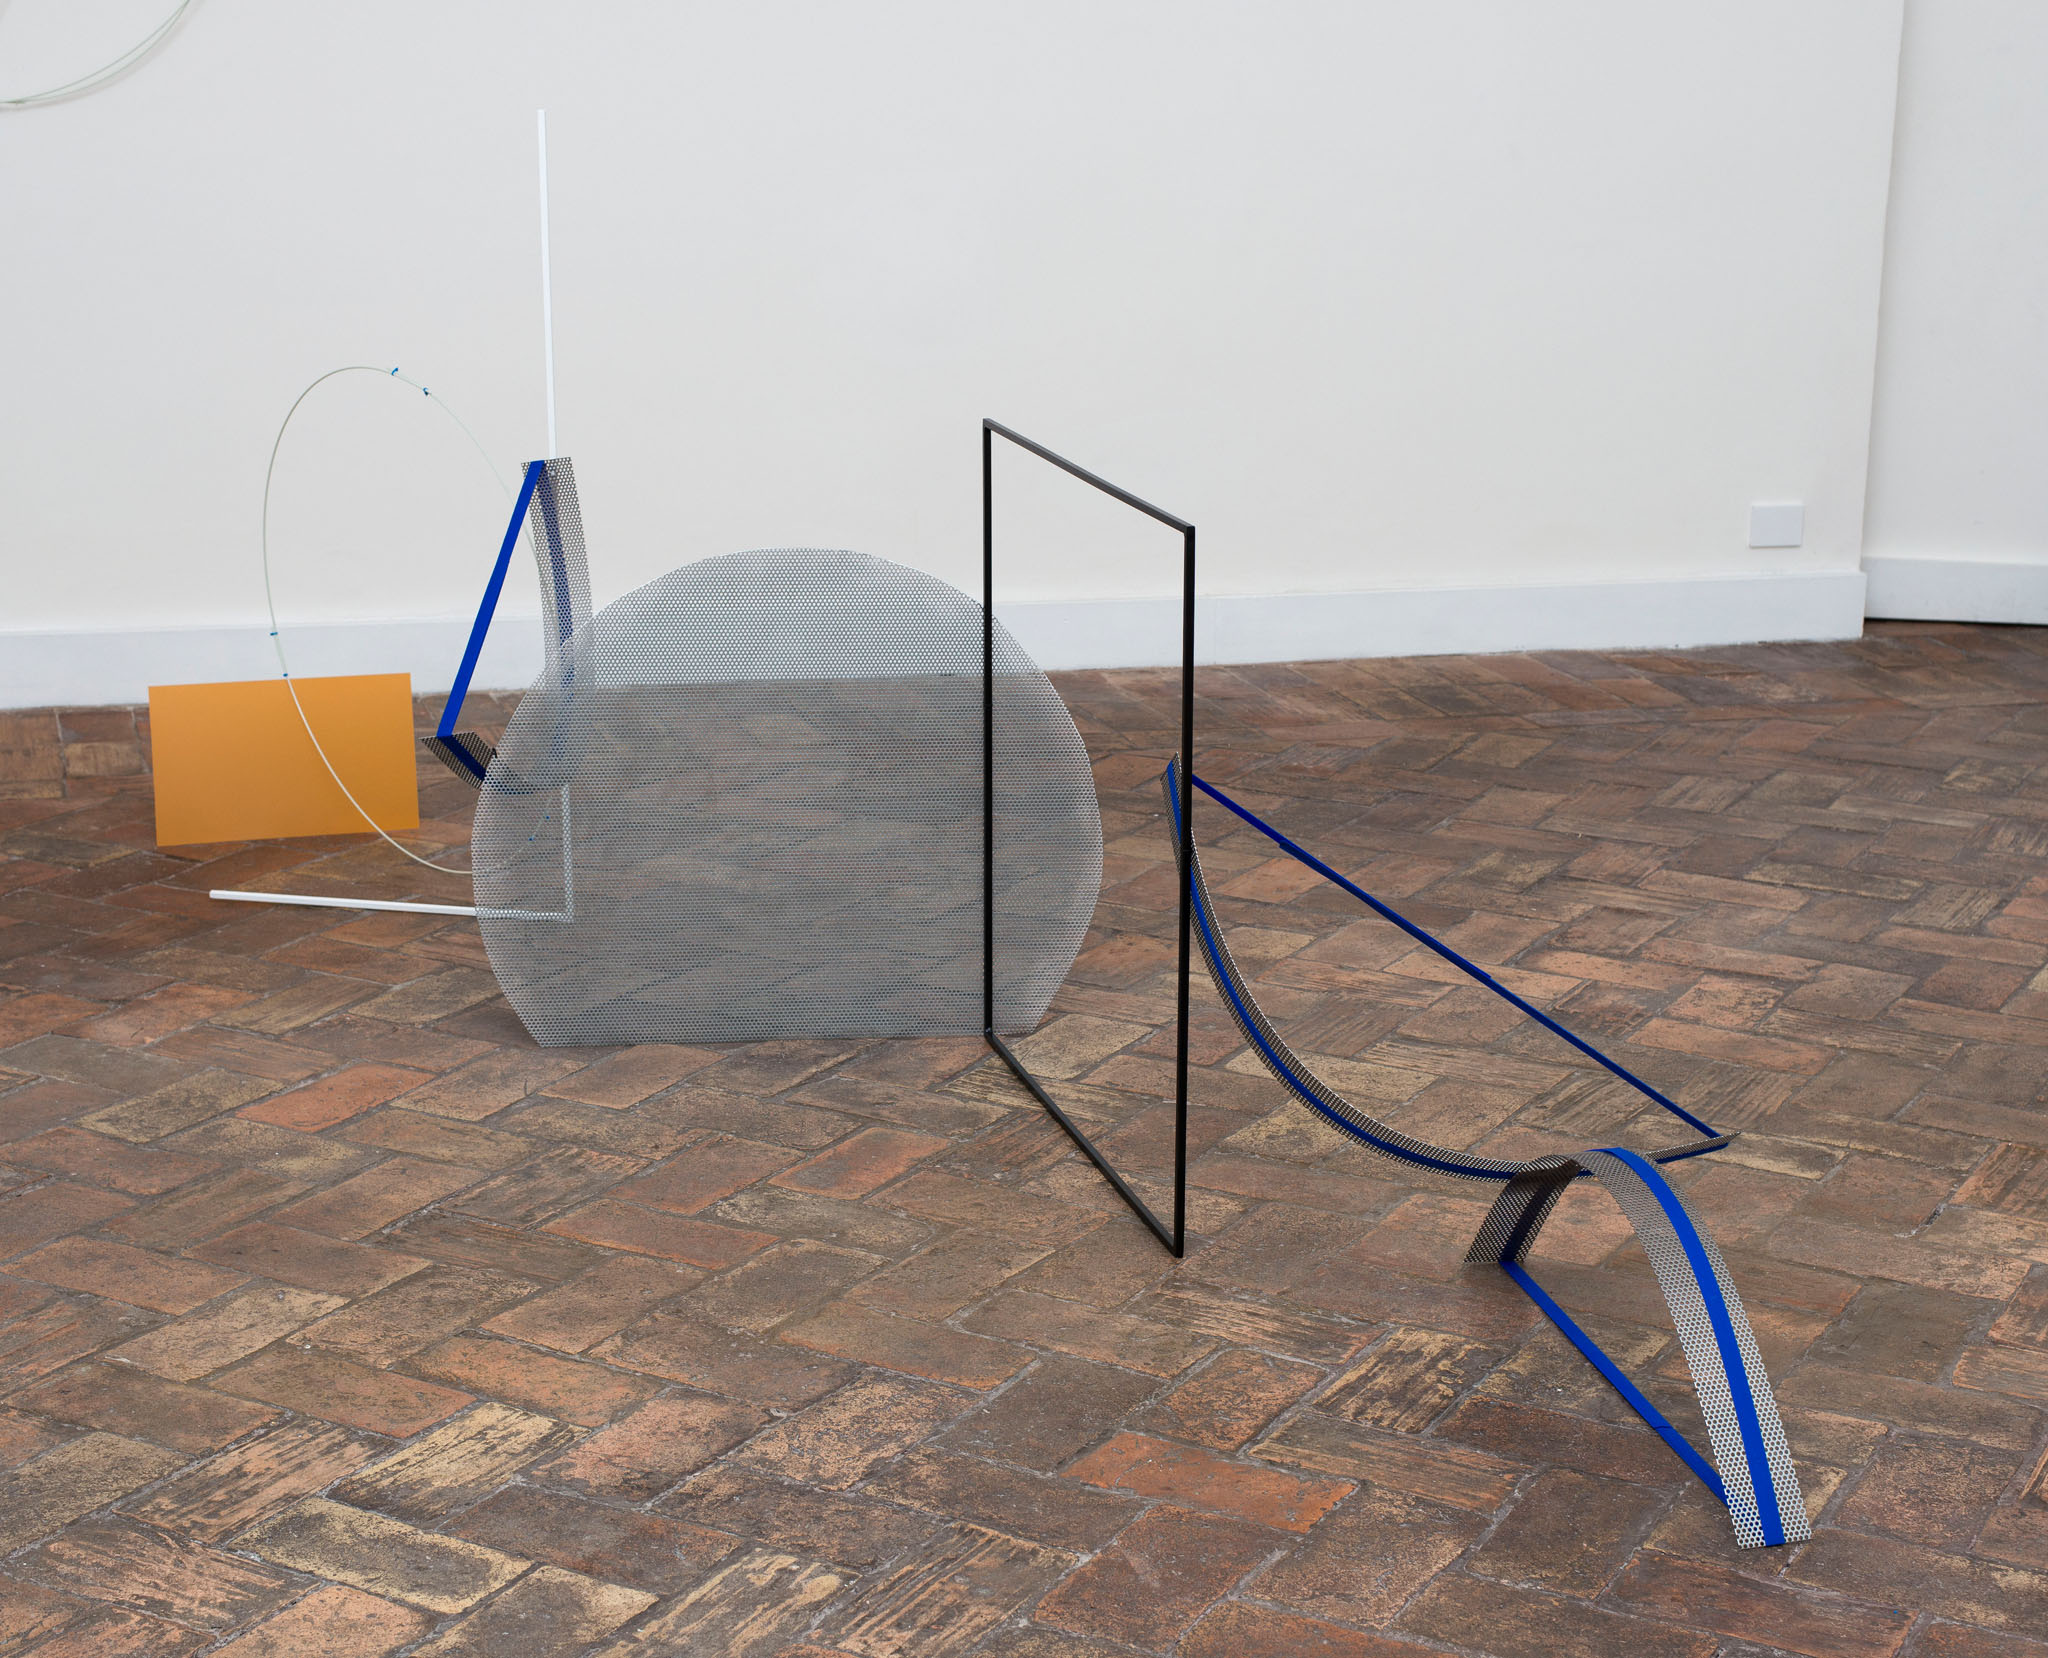 Alice Cattaneo, 'Untitled', 2015, Iron, paint, fiberglass, cable ties, plastic, velcro 140 x 300 x 150 cm .ca. Courtesy Galleria Marie-Laure. Photo: Giorgio Benni.